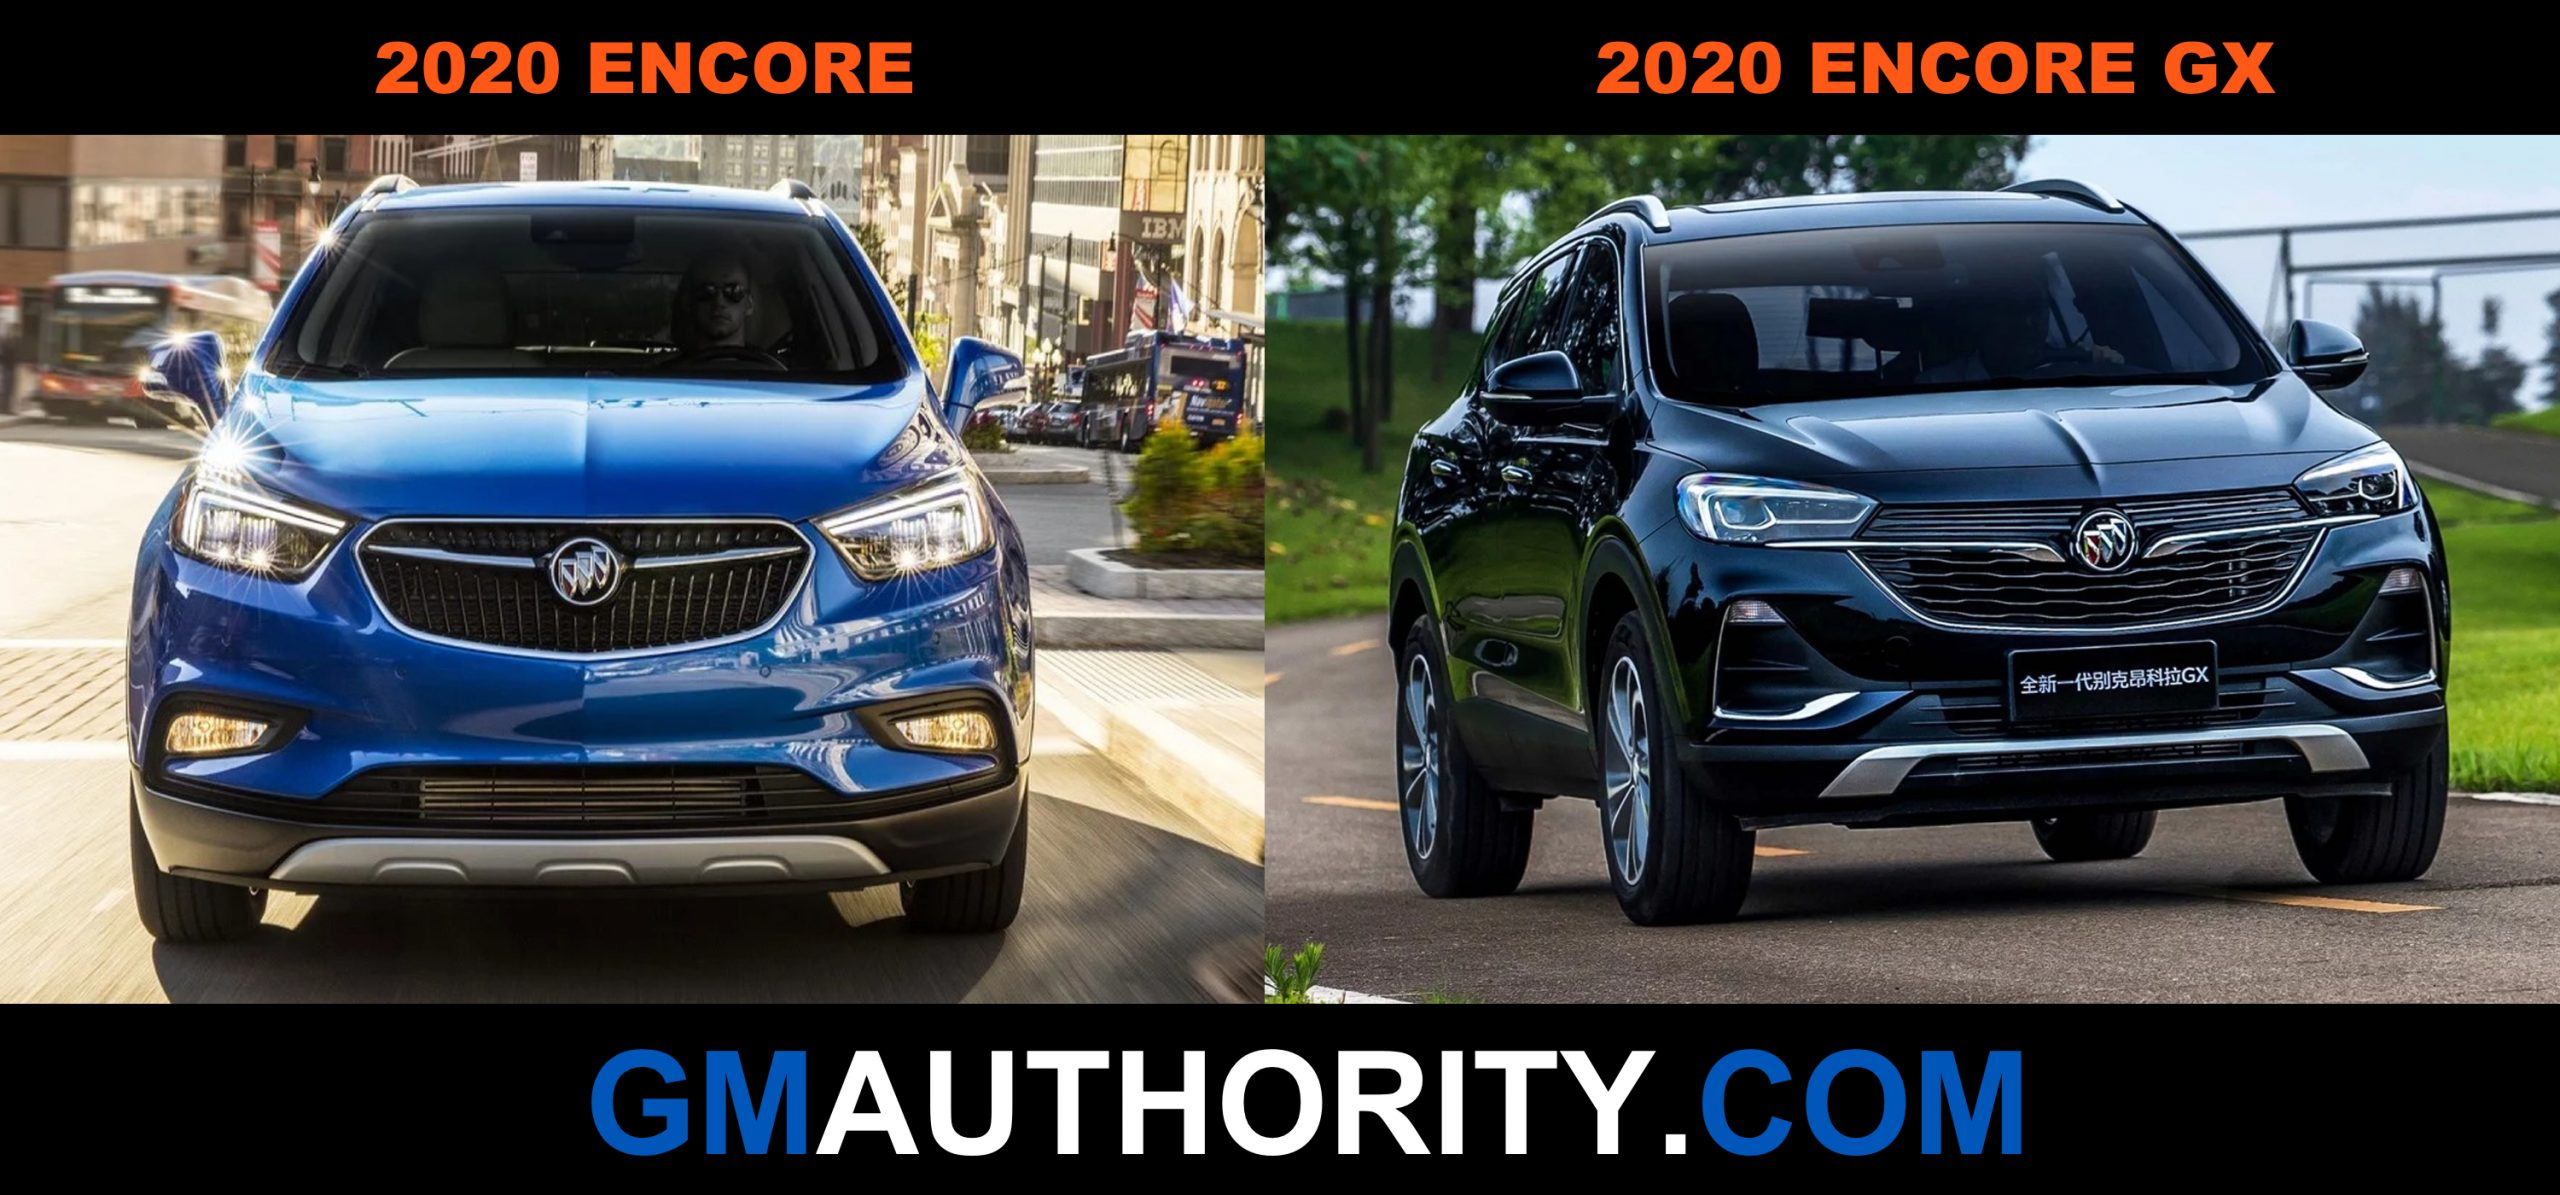 Buick Encore Vs. Buick Encore Gx: Visual Comparison | Gm 2022 Buick Encore Gx Build, Curb Weight, Cargo Space